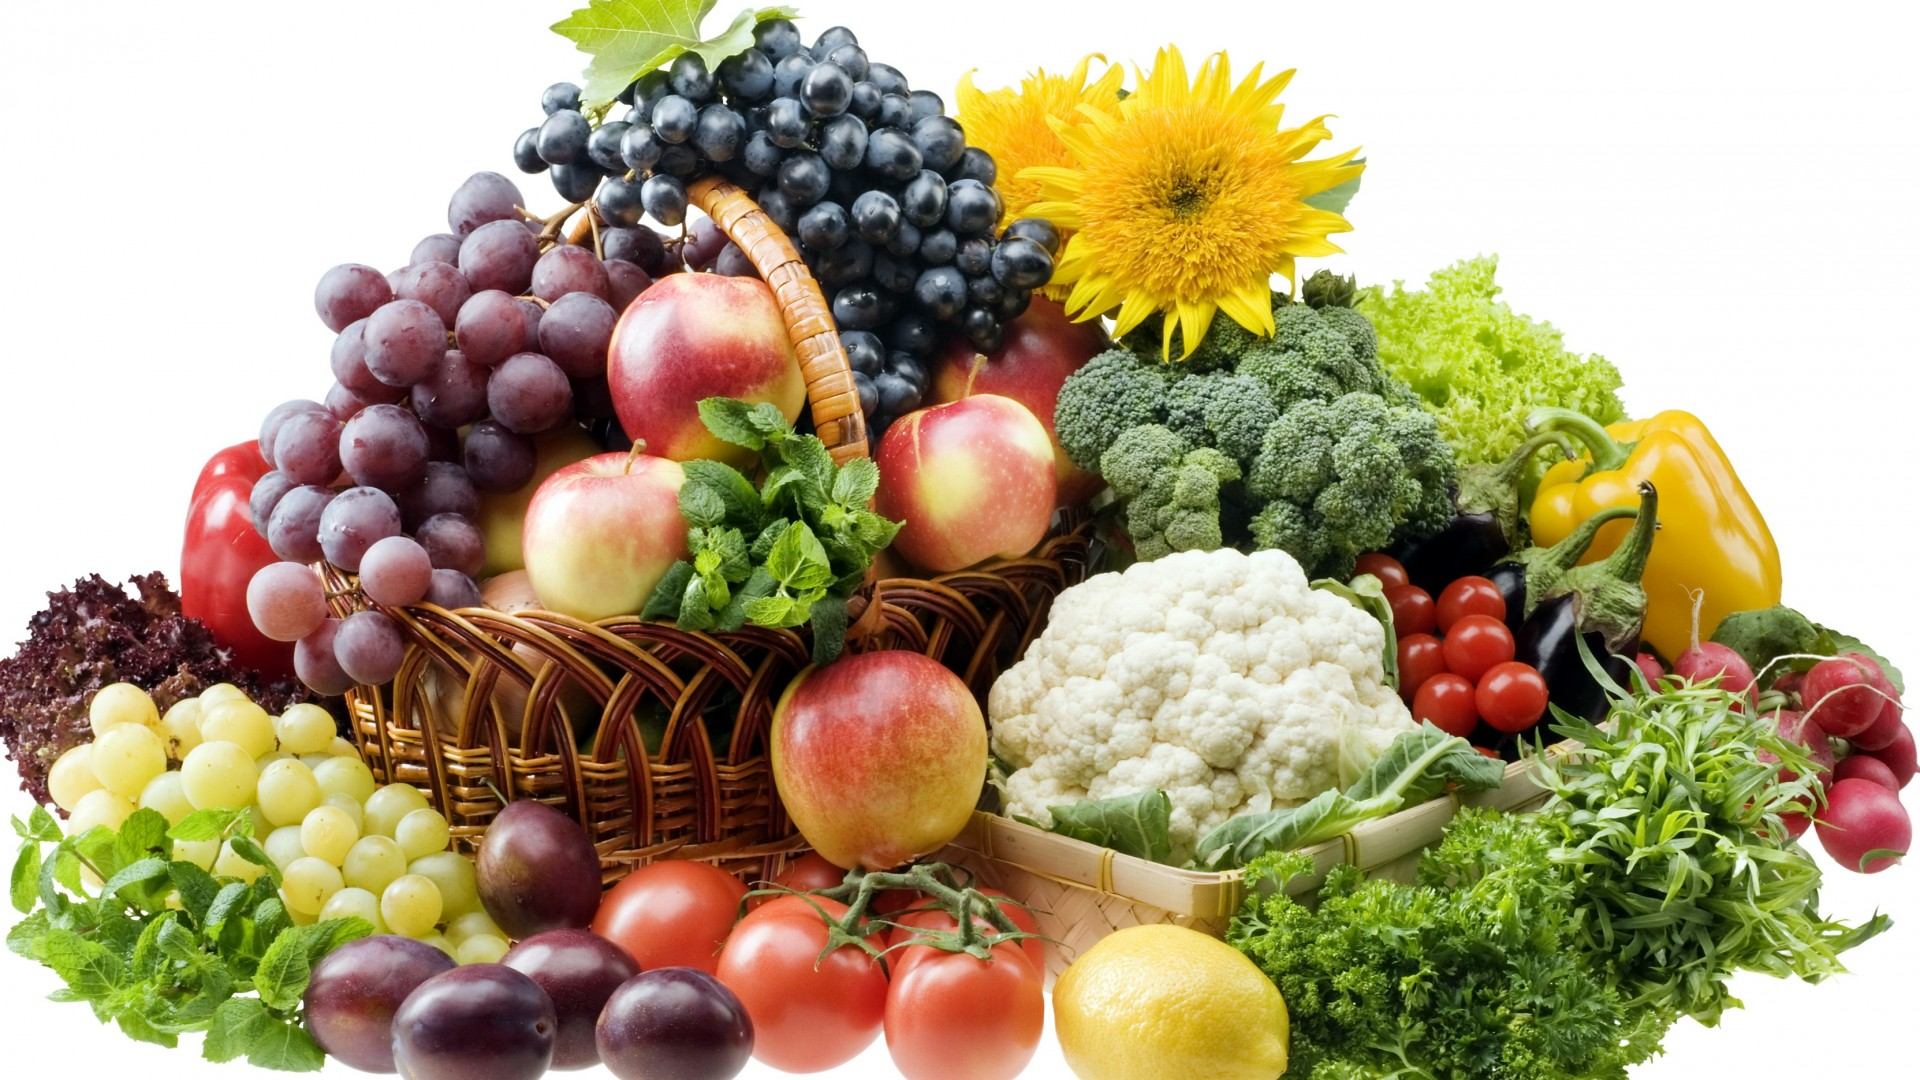 Fruits-And-Vegetable-Image-Wallpaper1